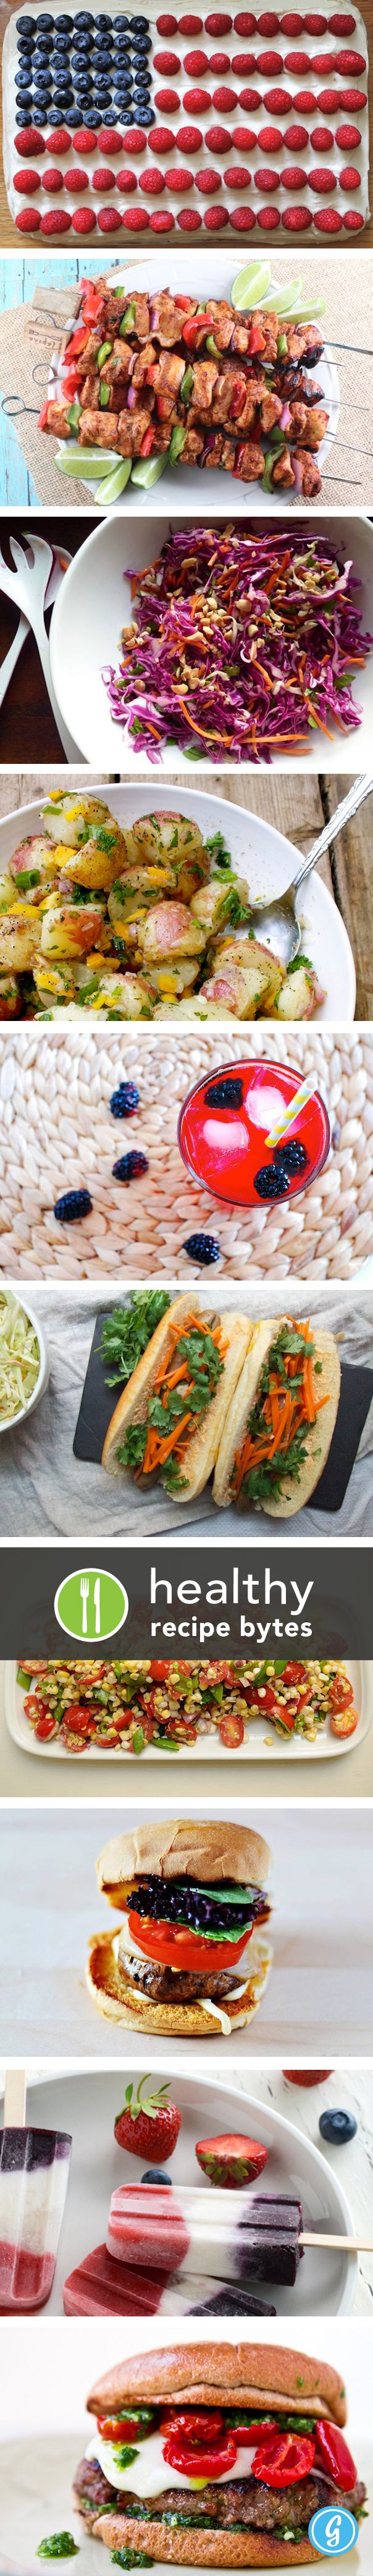 10 Healthier 4th of July Recipes from Around the Web